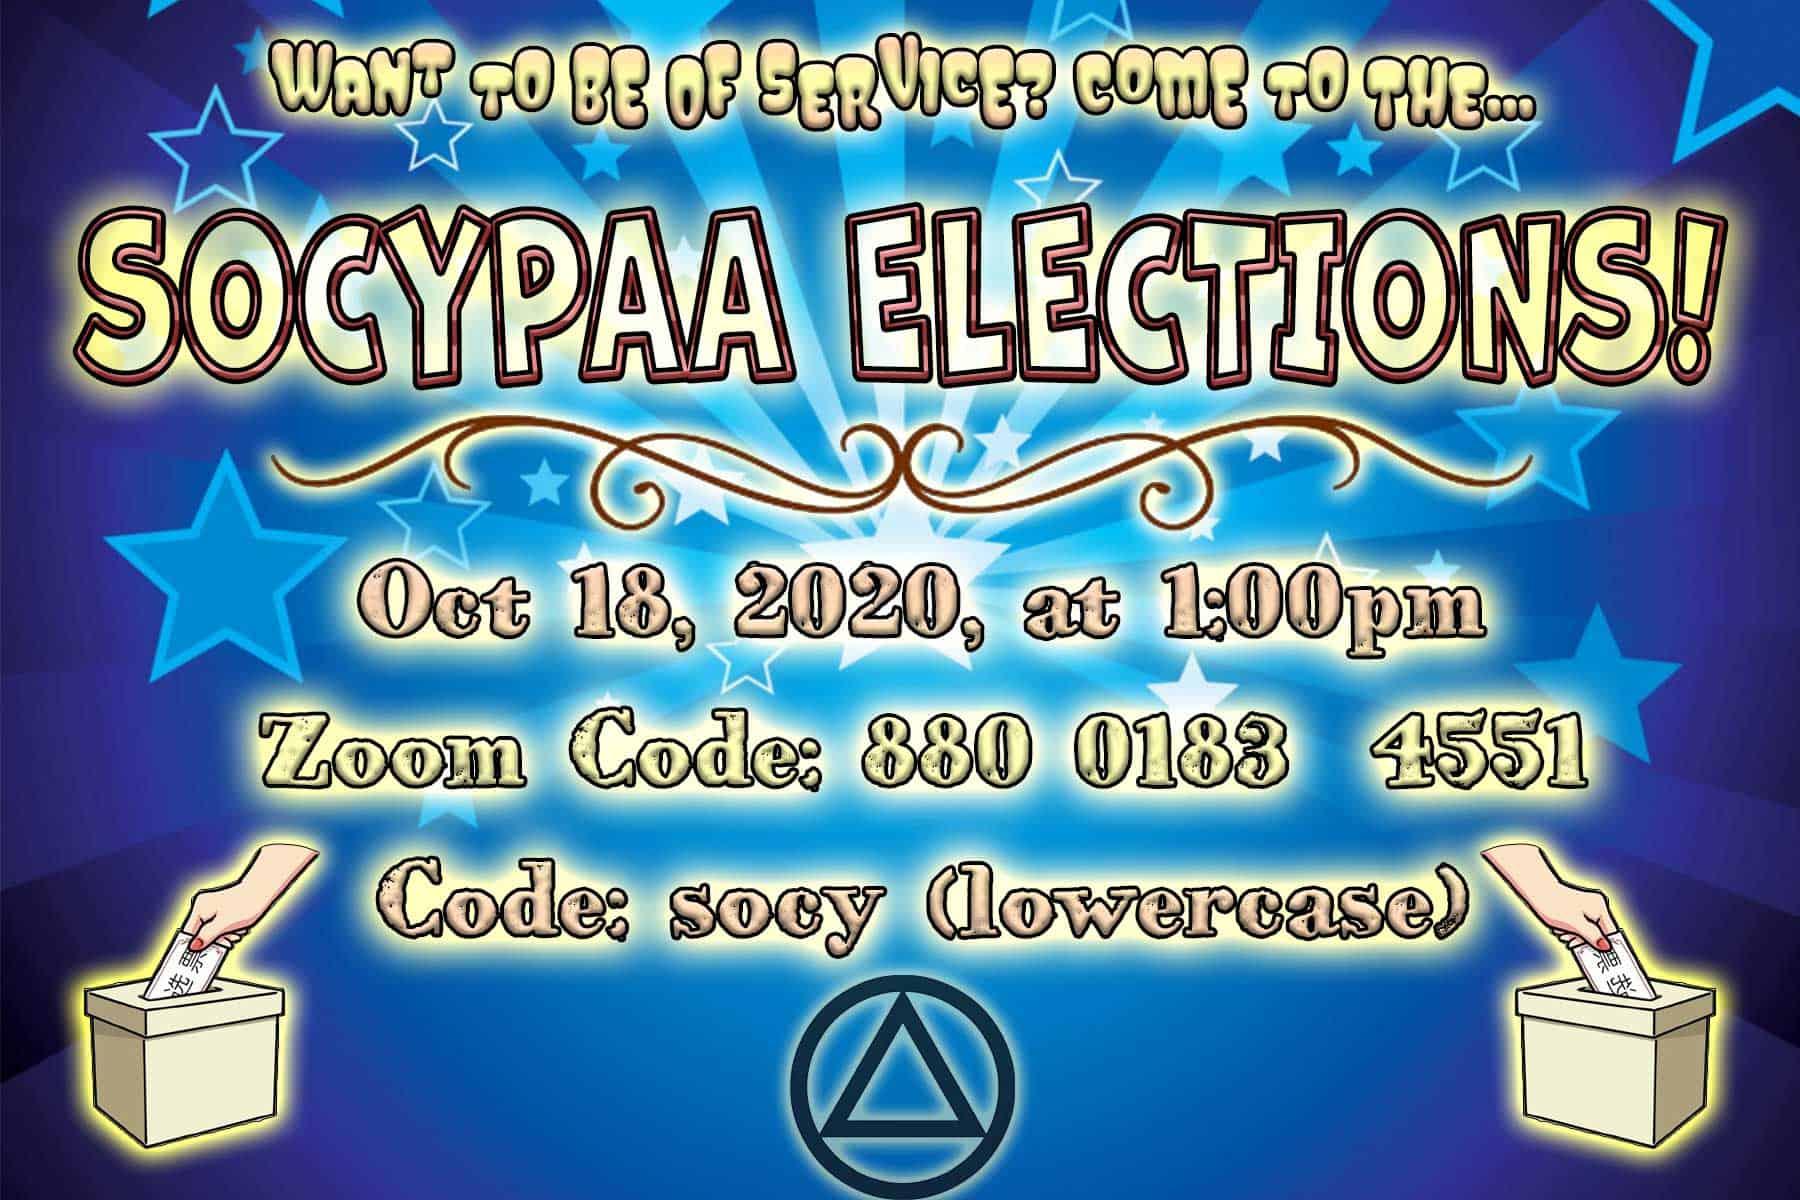 2020 Socypaa Elections flyer